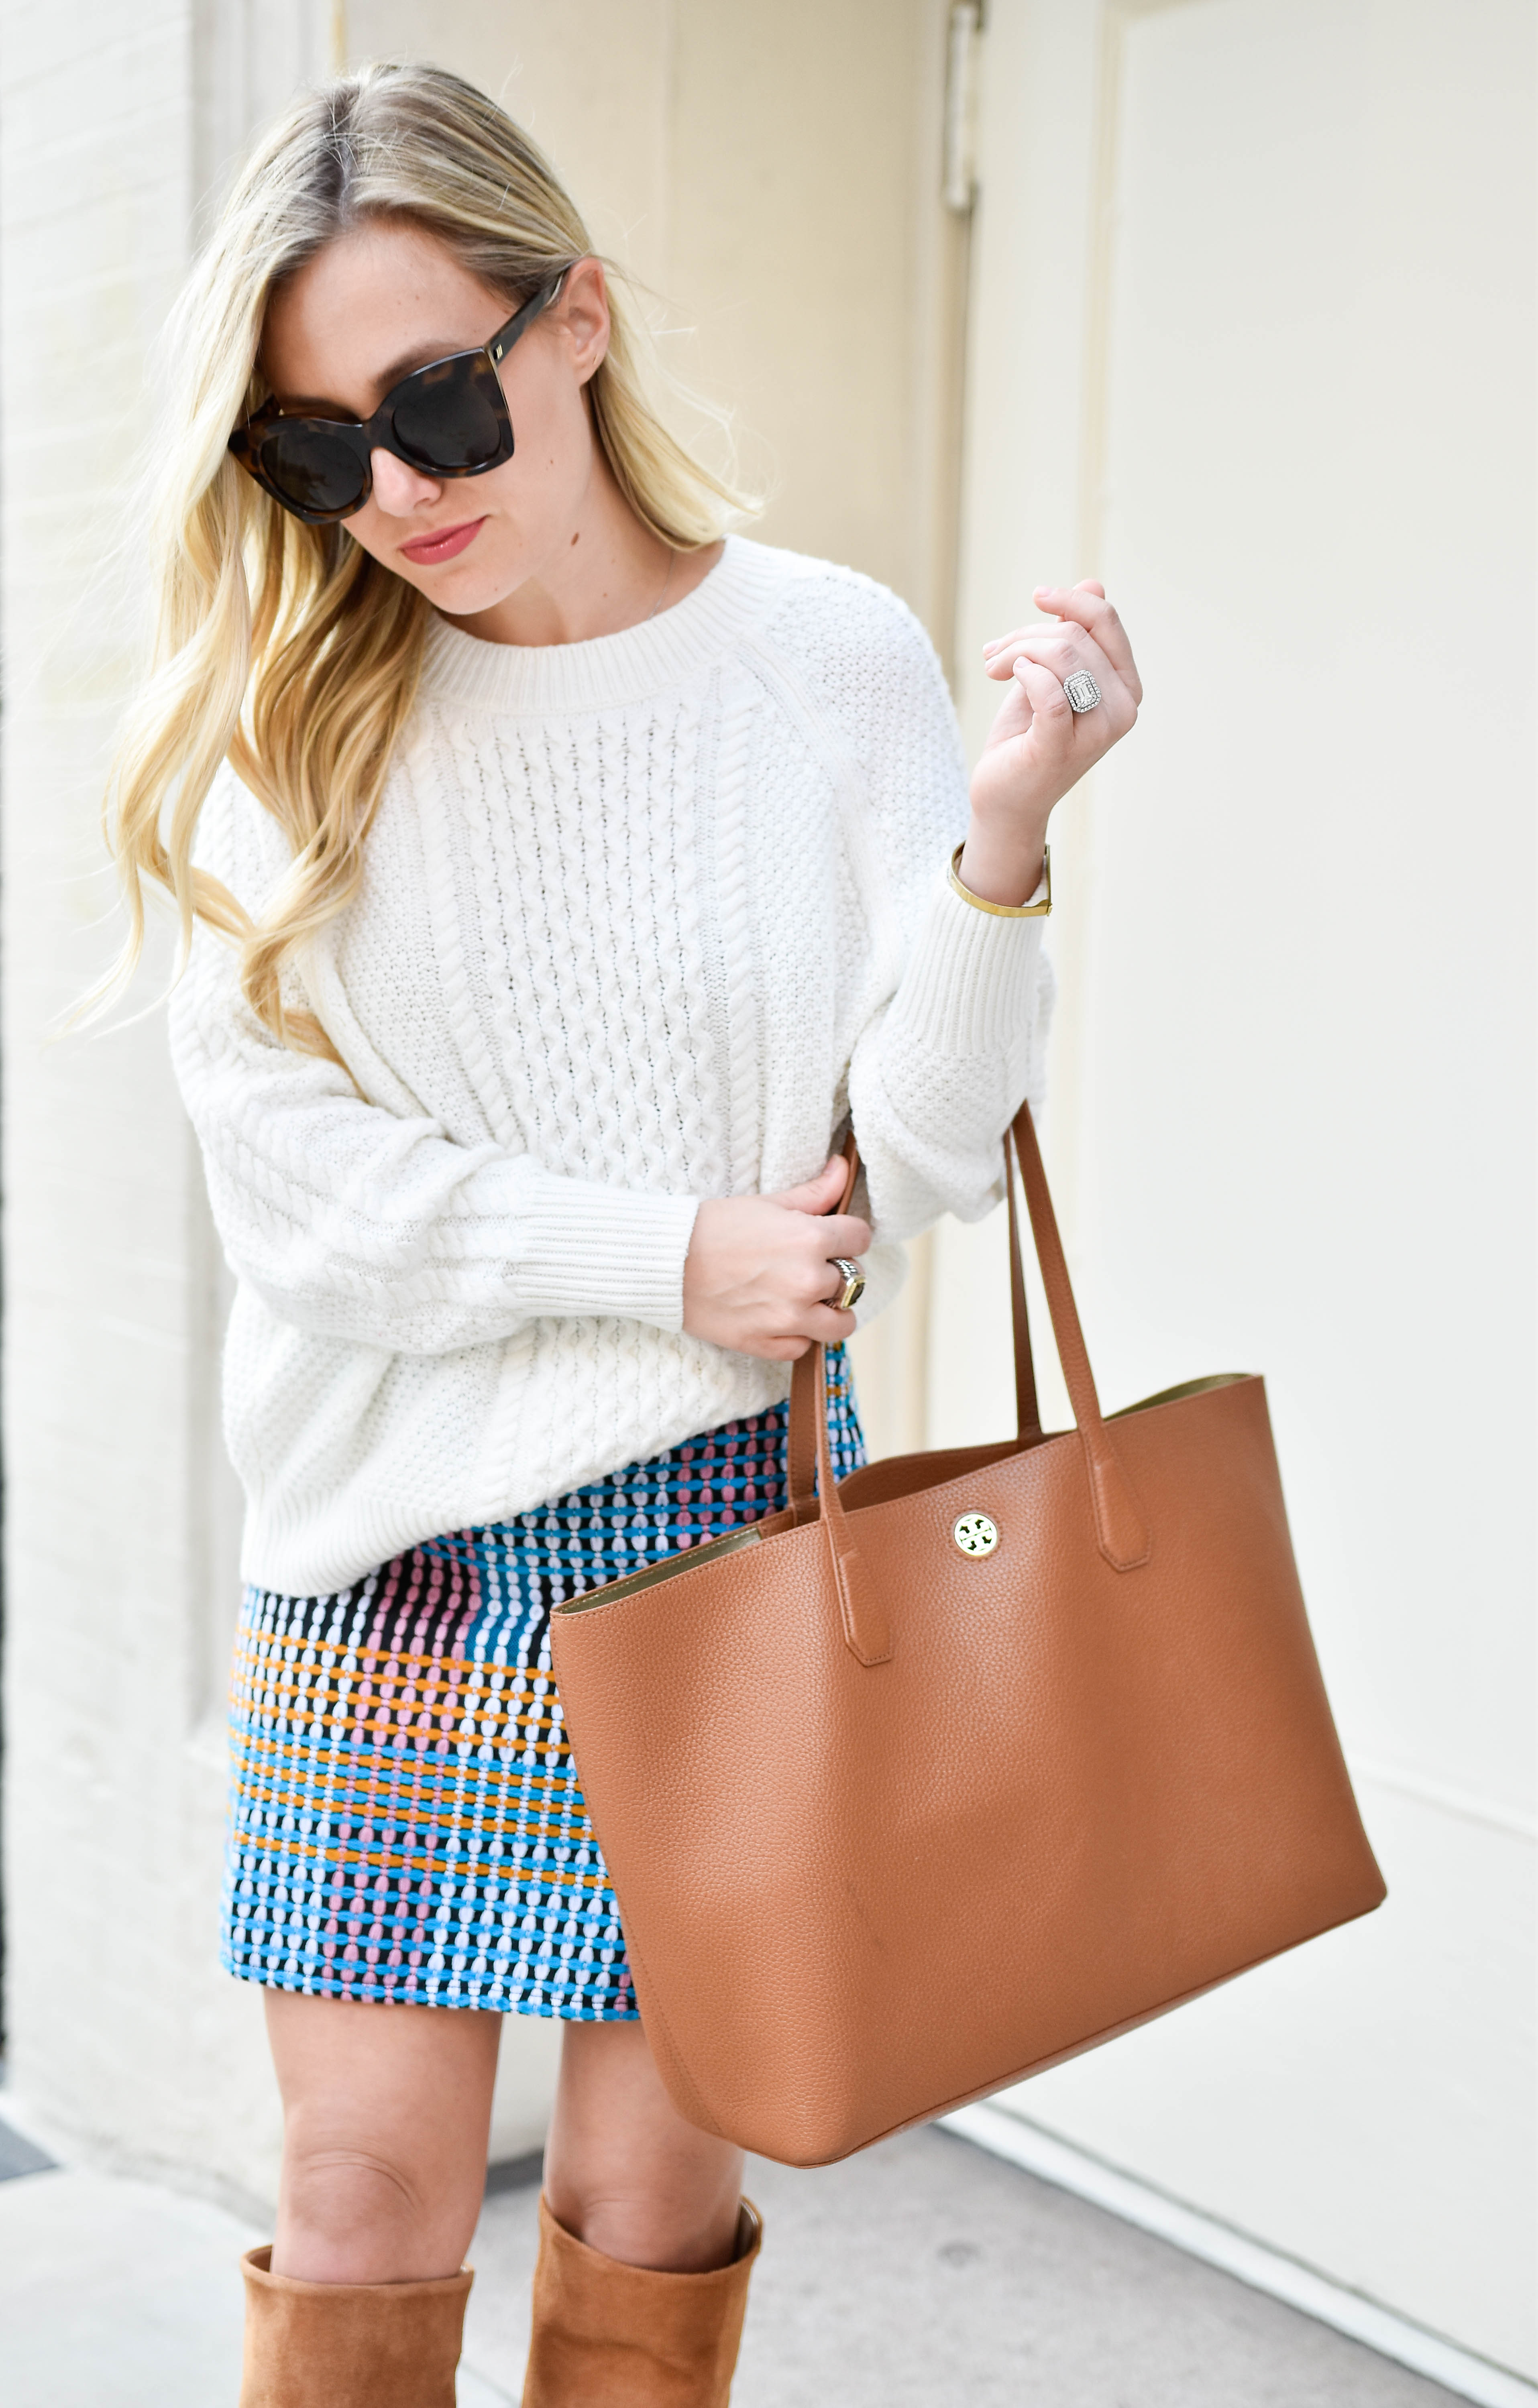 Fall-fashion, Nordstrom, Cableknit-sweater, over-the-knee-boots, tory-burch-tote, mini-skirt, thanksgiving-outfit